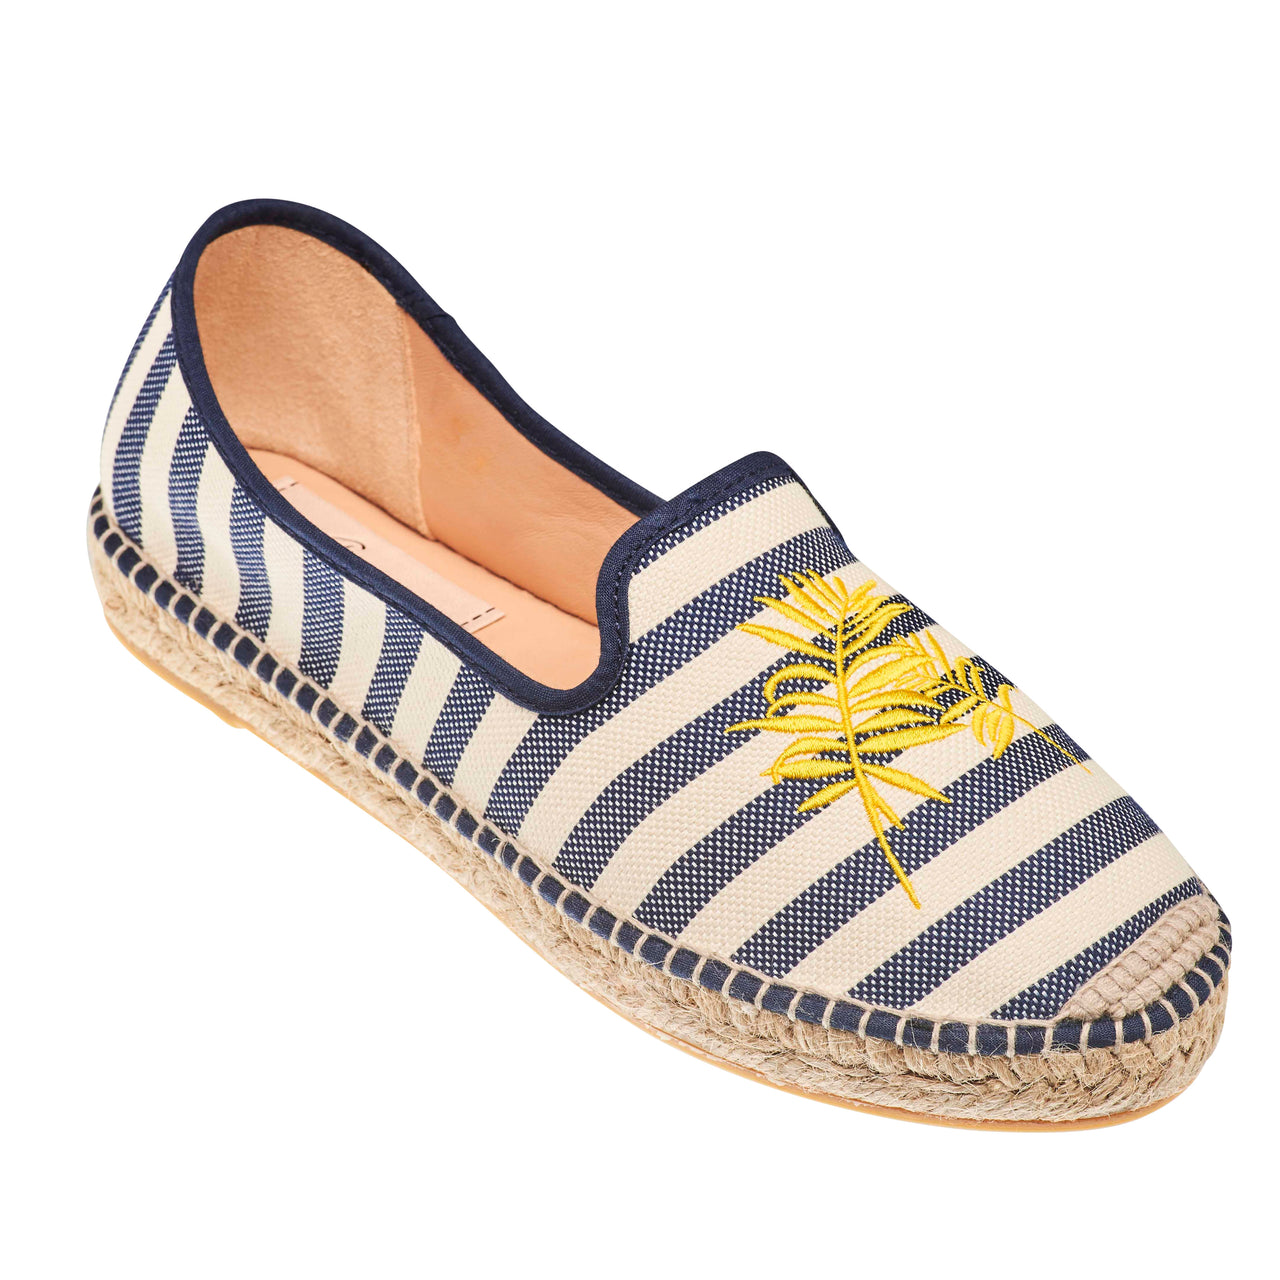 TONSON Navy espadrilles - Badt and Co - singapore